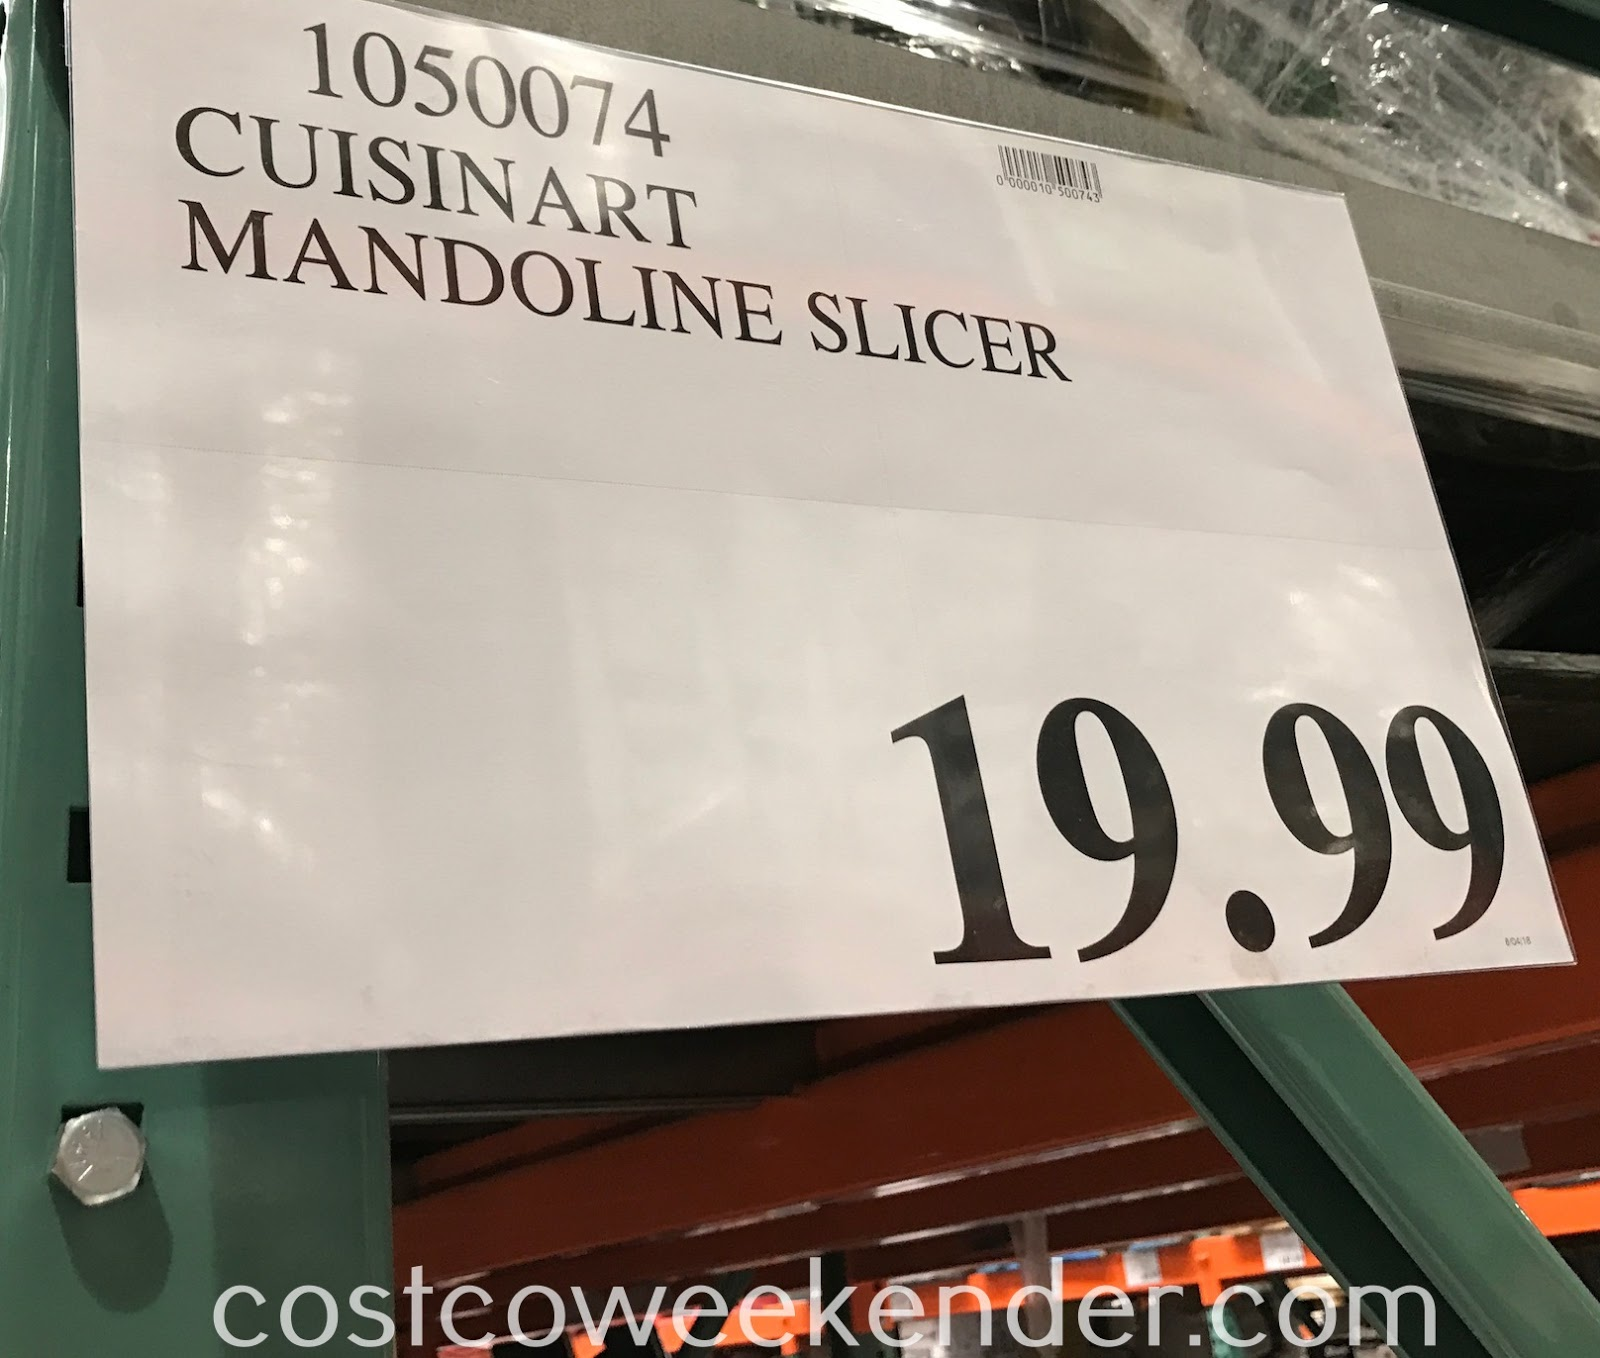 Deal for the Cuisinart Mandoline Slicer at Costco